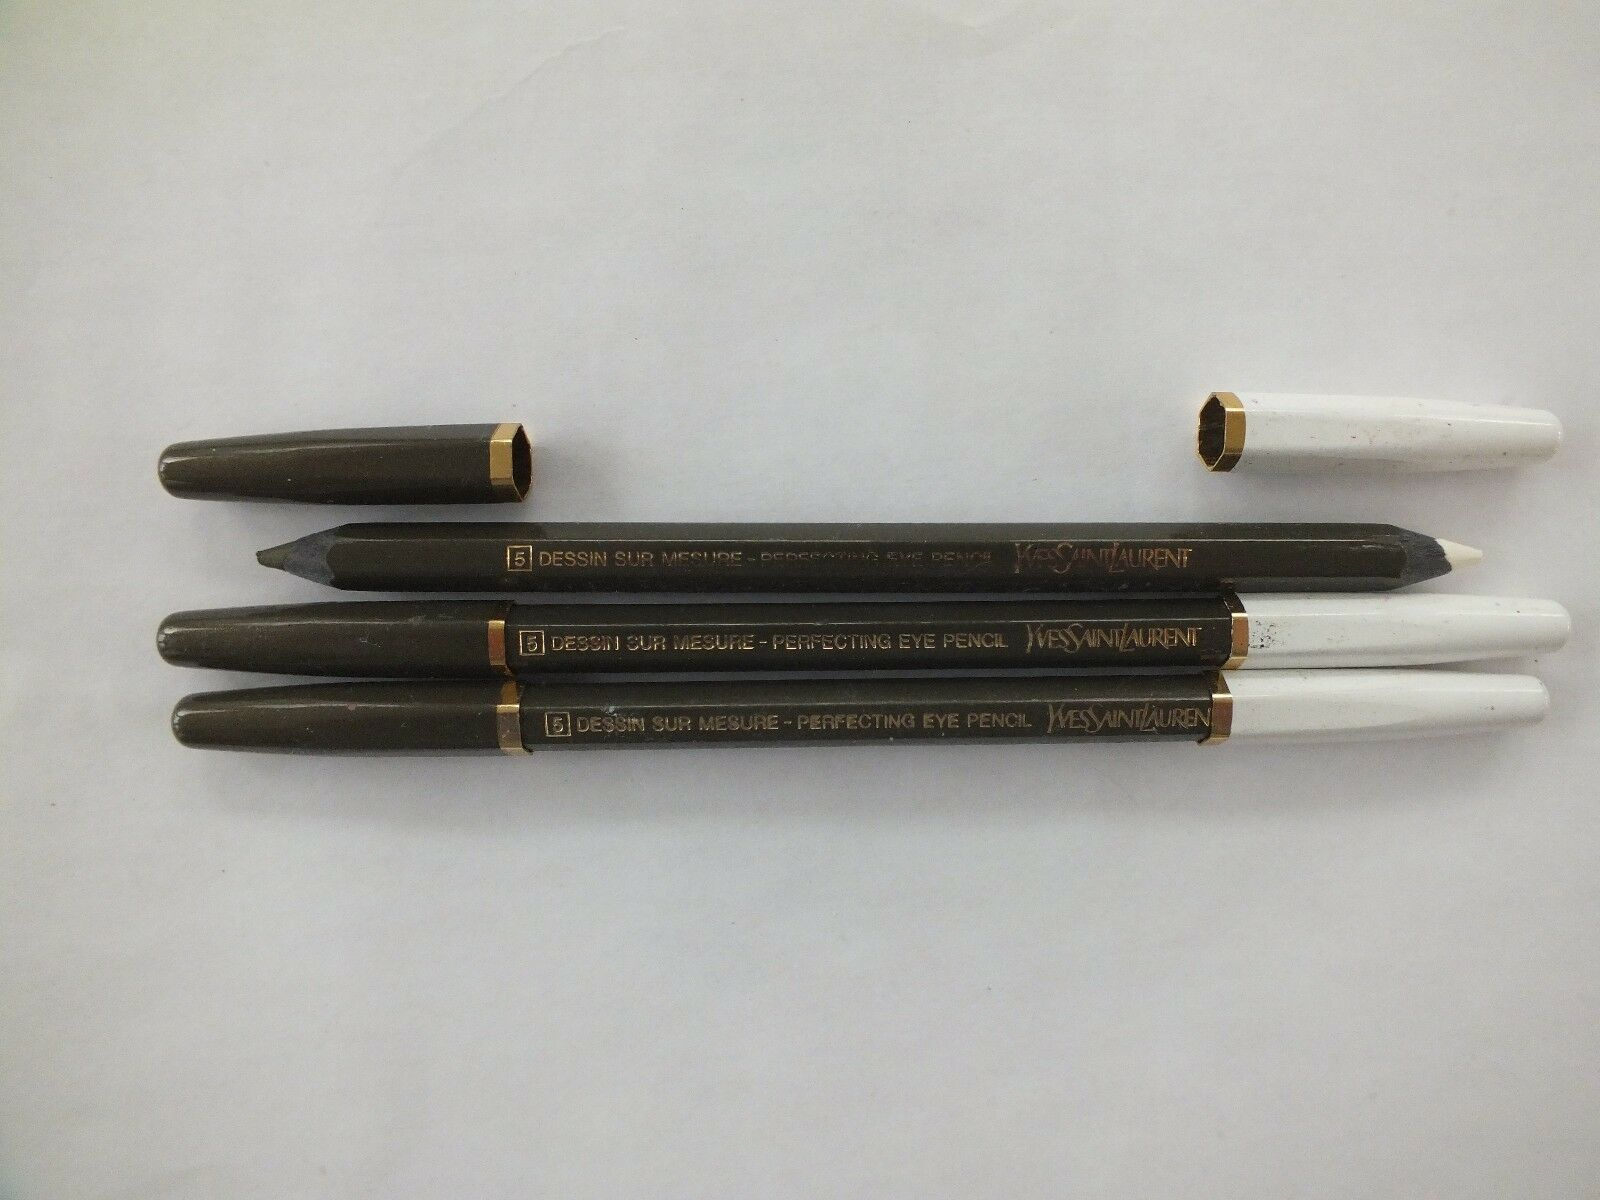 3 YVES SAINT LAURENT PERFECTING EYE PENCIL DUO - #5 - FULL SIZE - NEW - $22.76